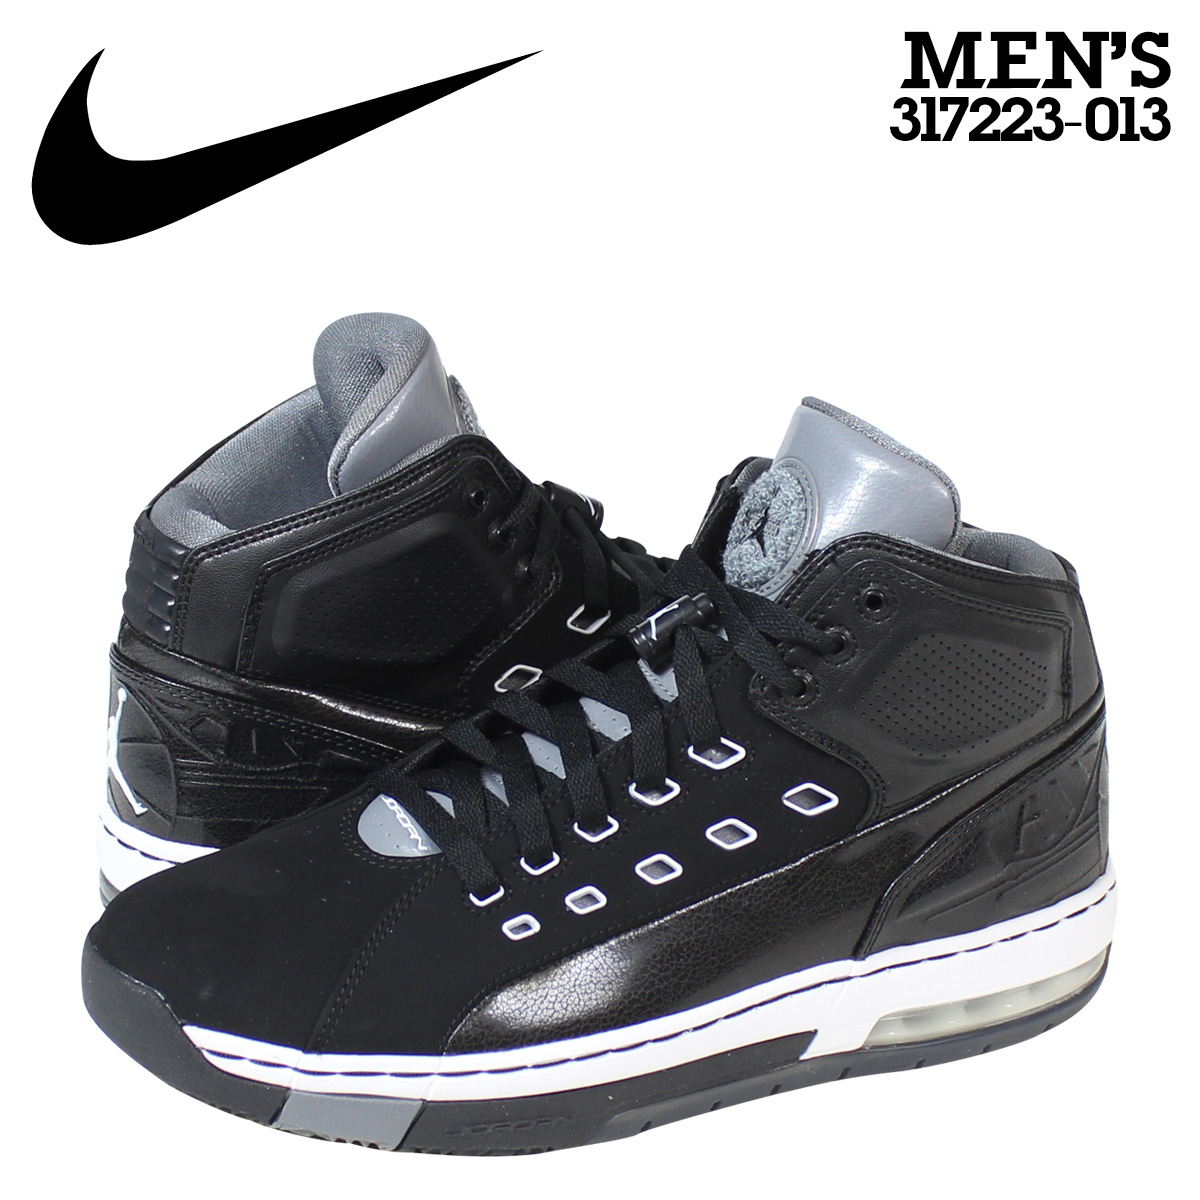 nike air jordans old school